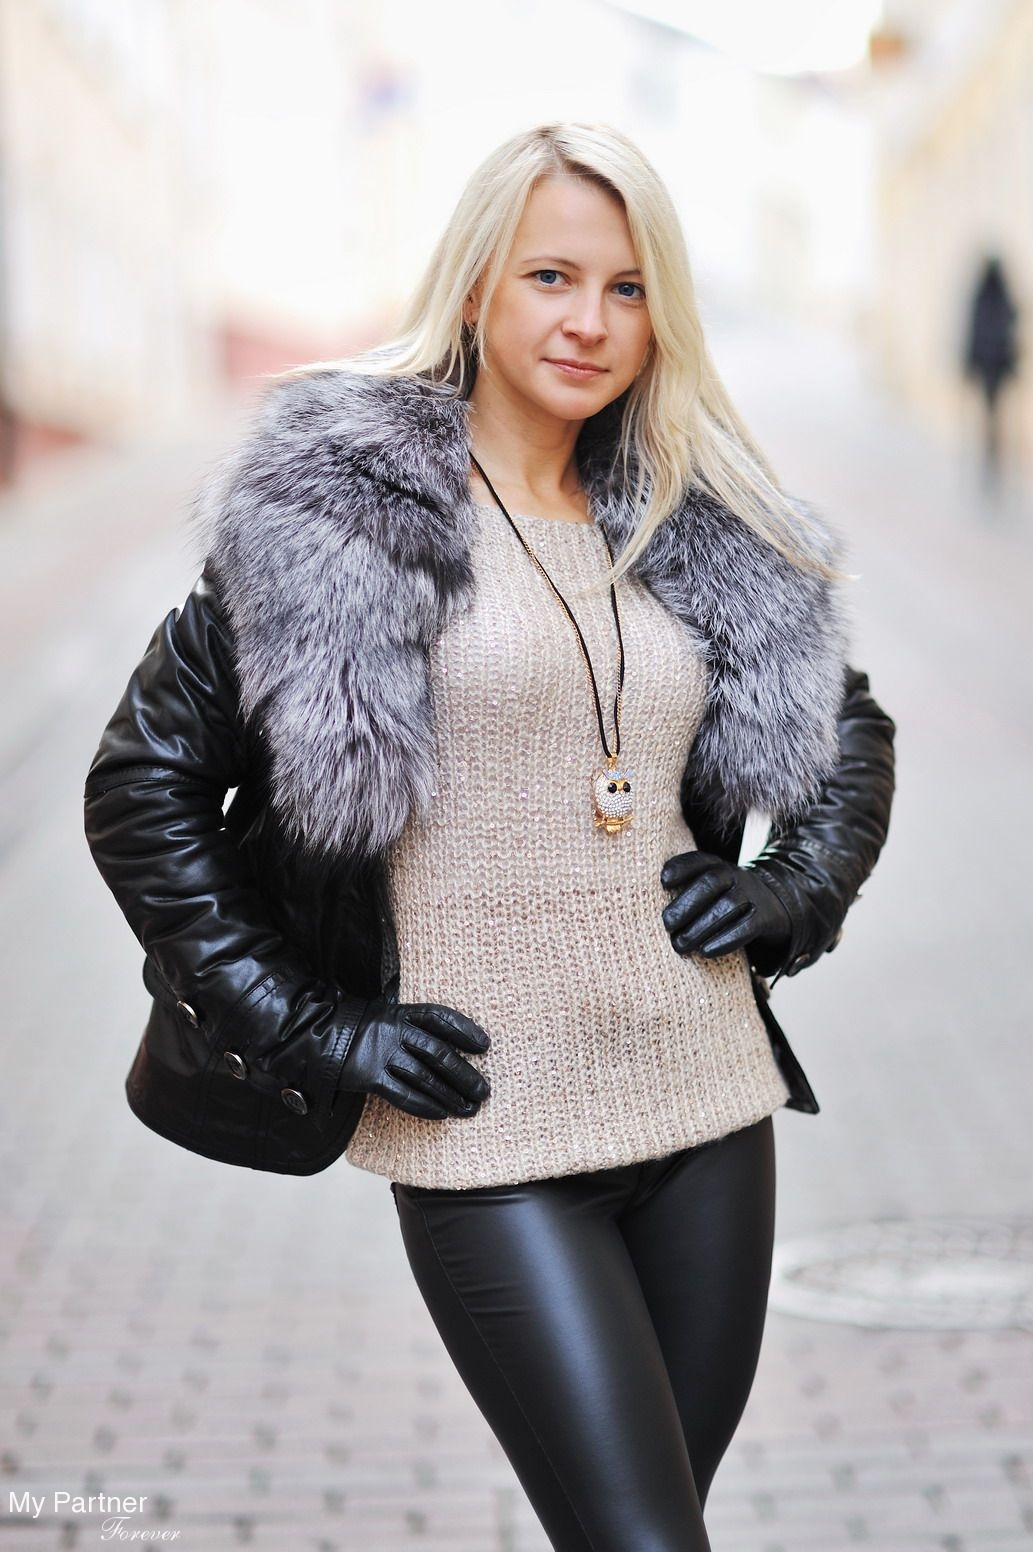 From Minsk Belarus Mail Bride 25